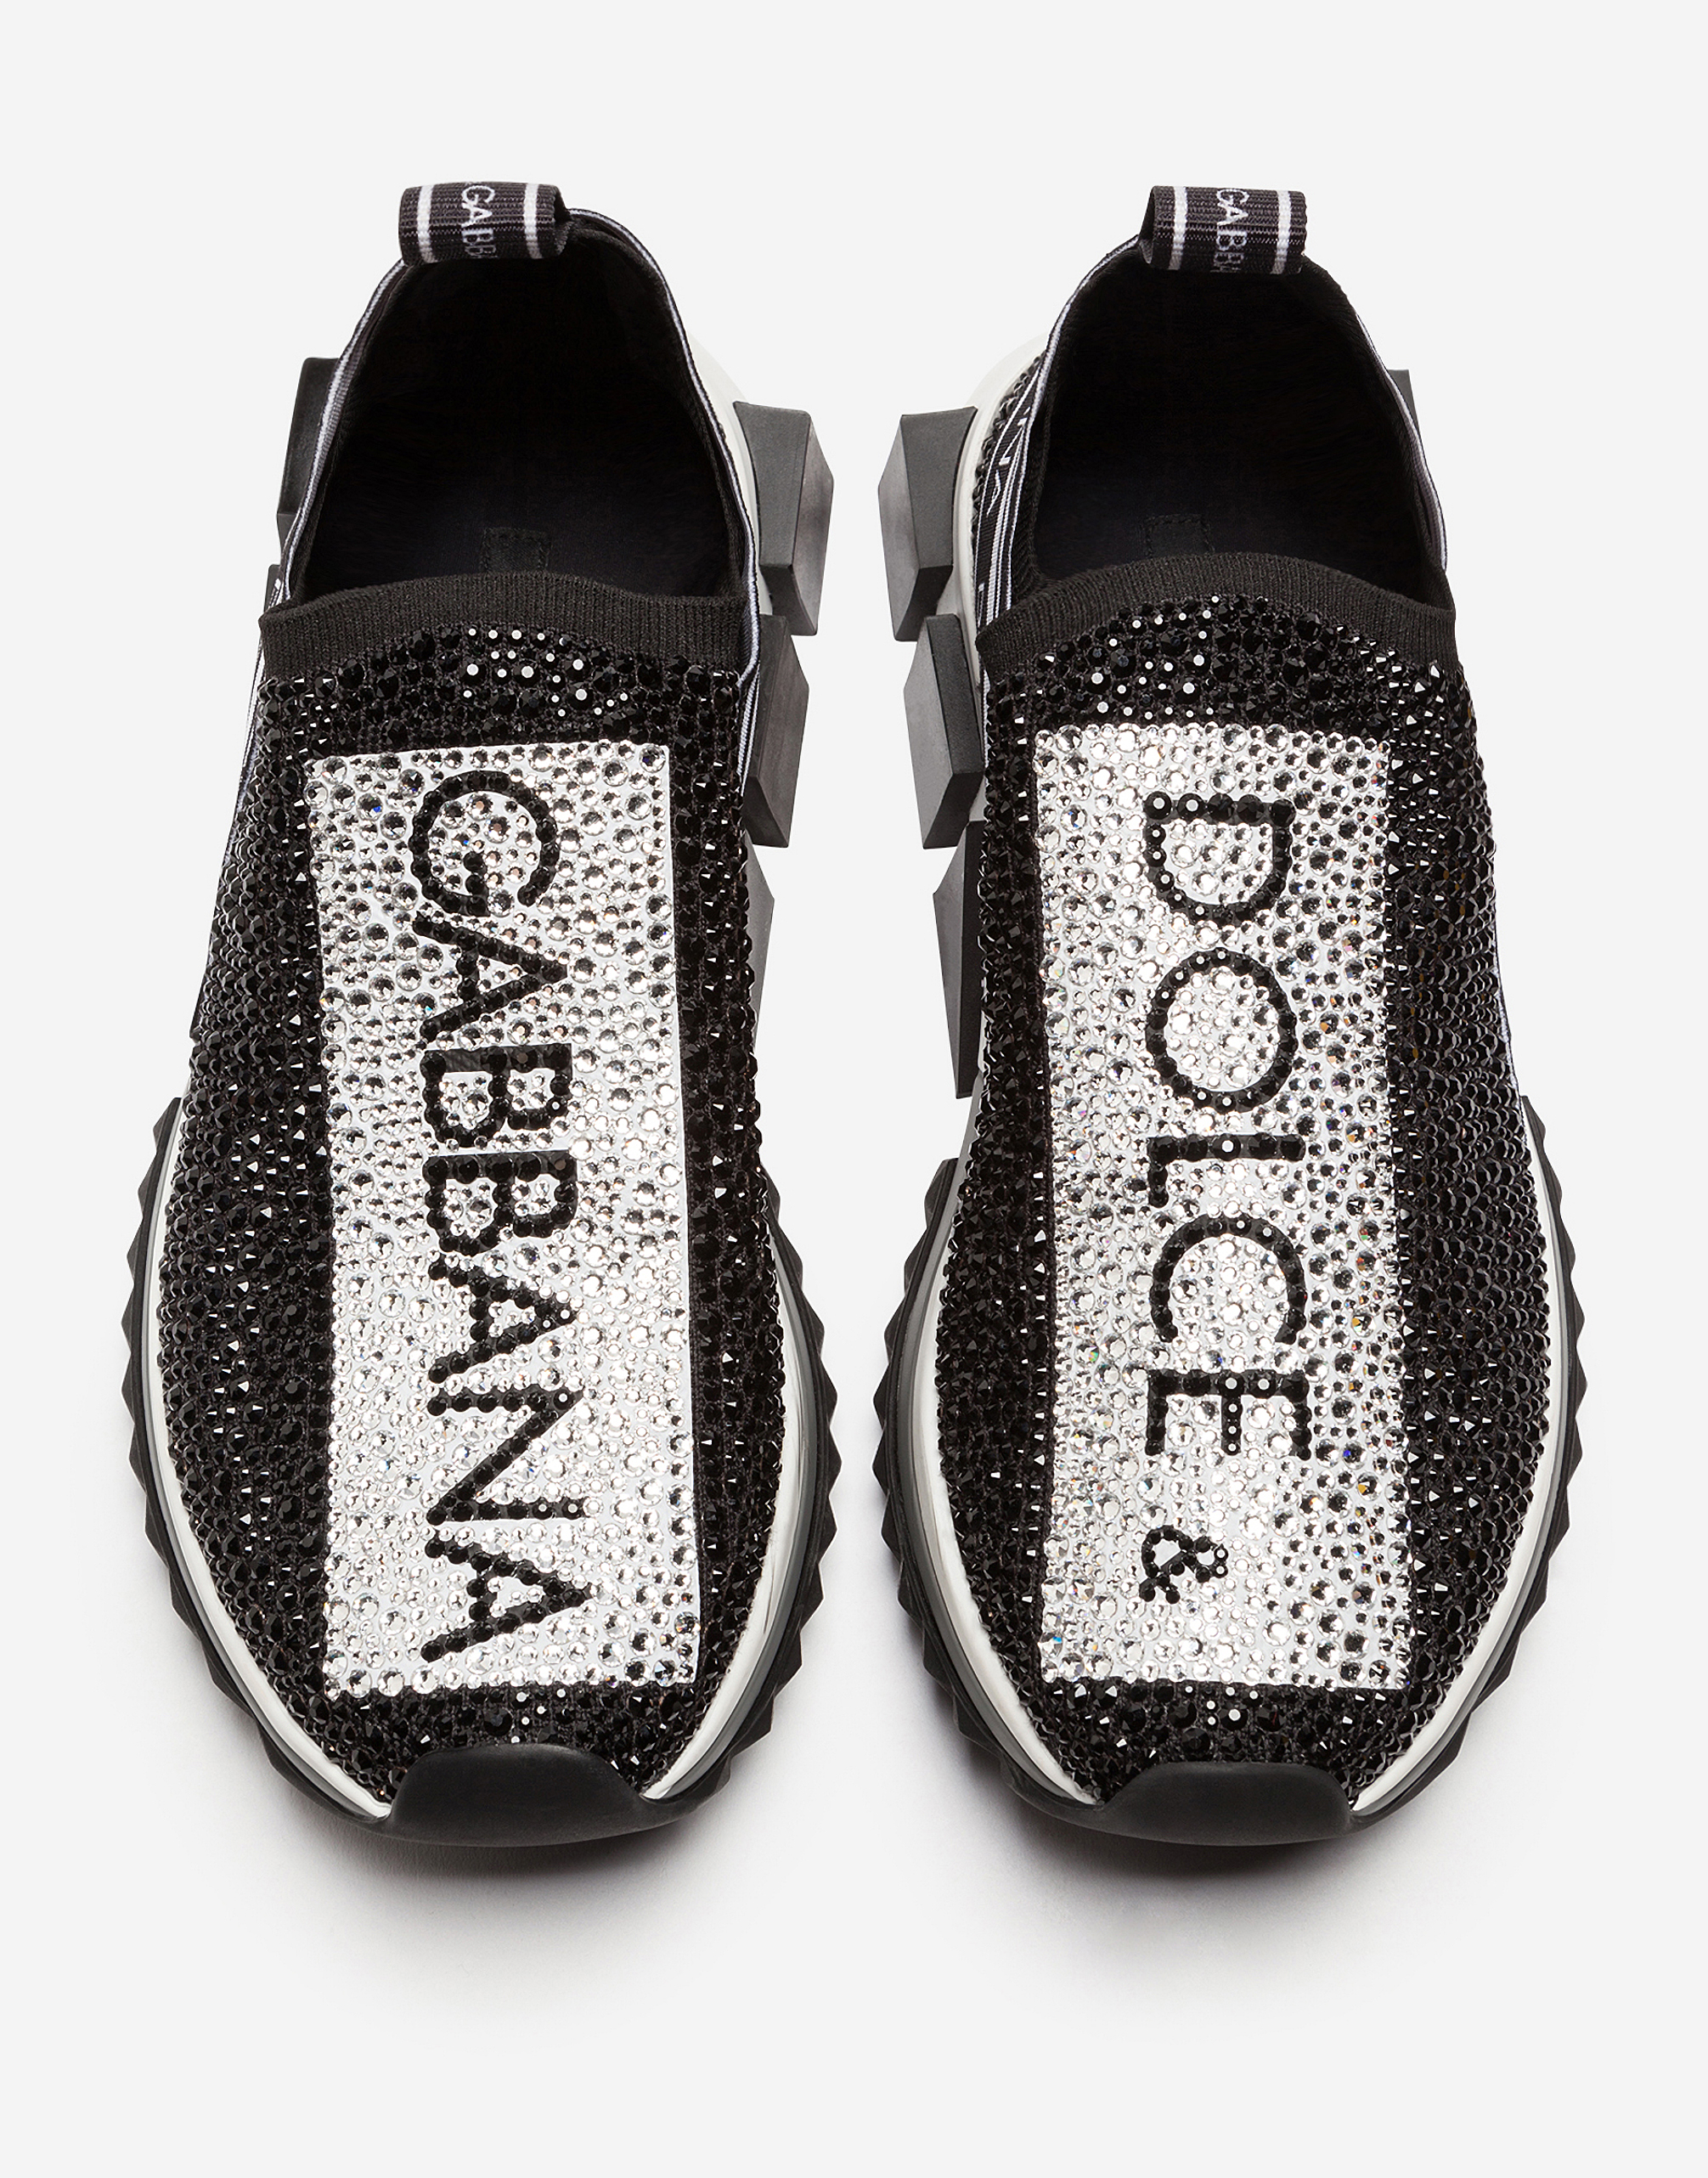 e418c2b430da Sorrento Sneakers with Crystals - Women's Shoes | Dolce&Gabbana